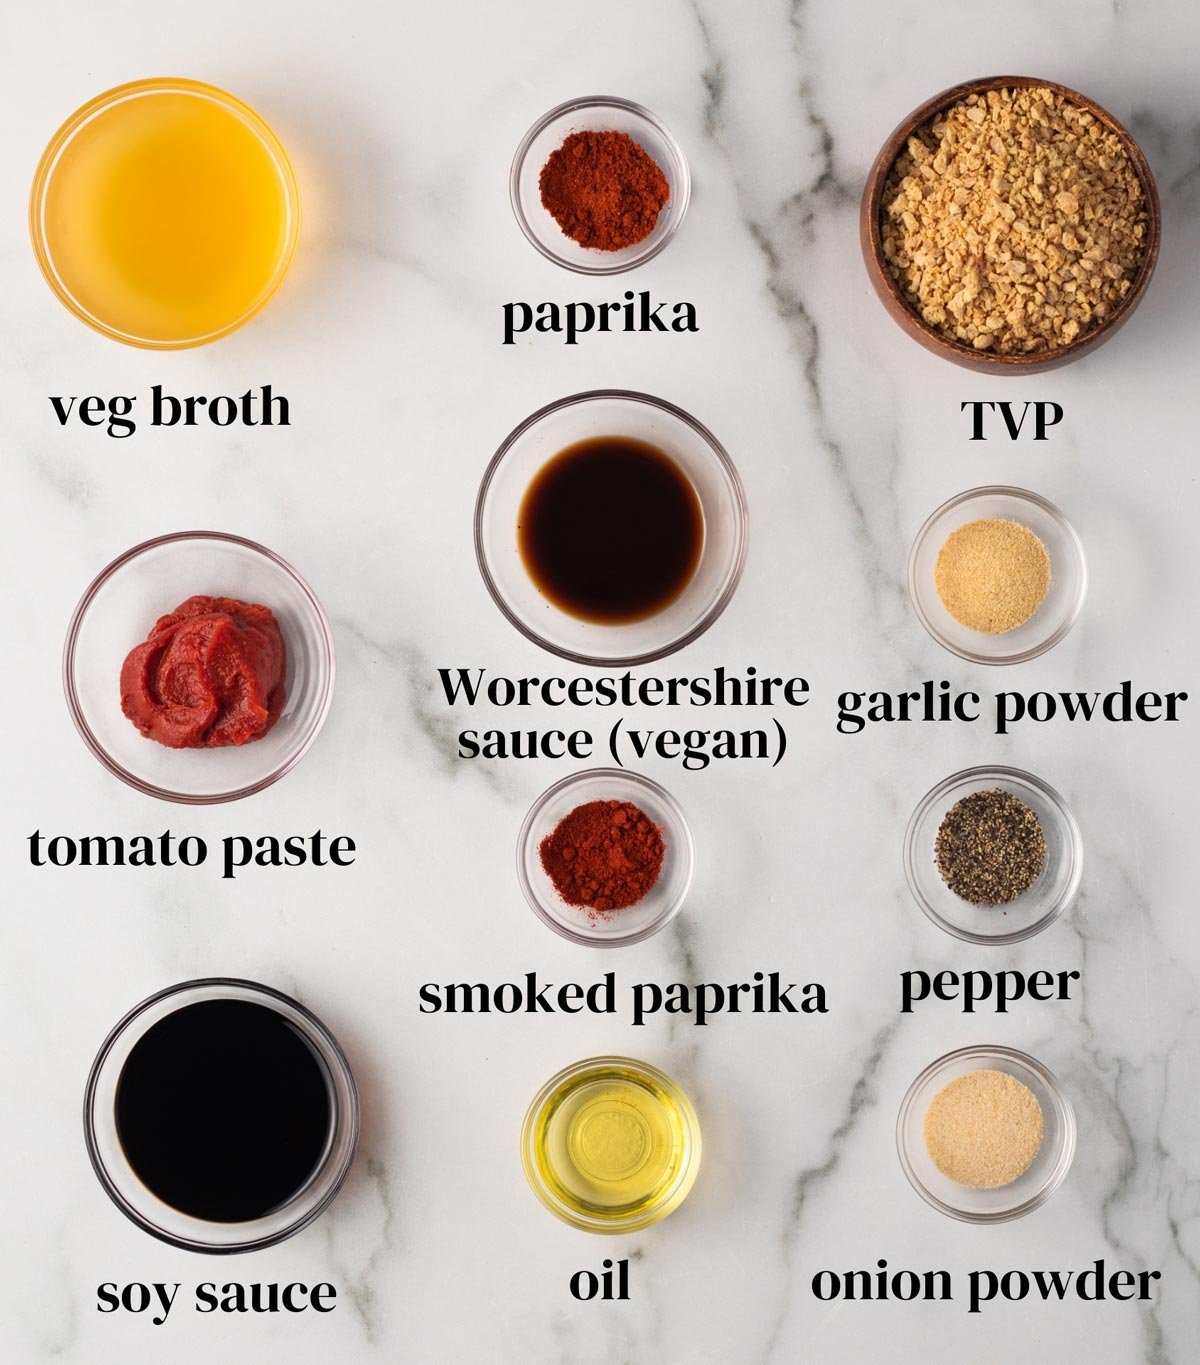 Ingredients for vegetarian ground meat laid out on a surface: vegetable broth, paprika, textured vegetable protein (TVP), tomato paste, vegan Worcestershire sauce, garlic powder, smoked paprika, pepper, soy sauce, onion powder, and oil.